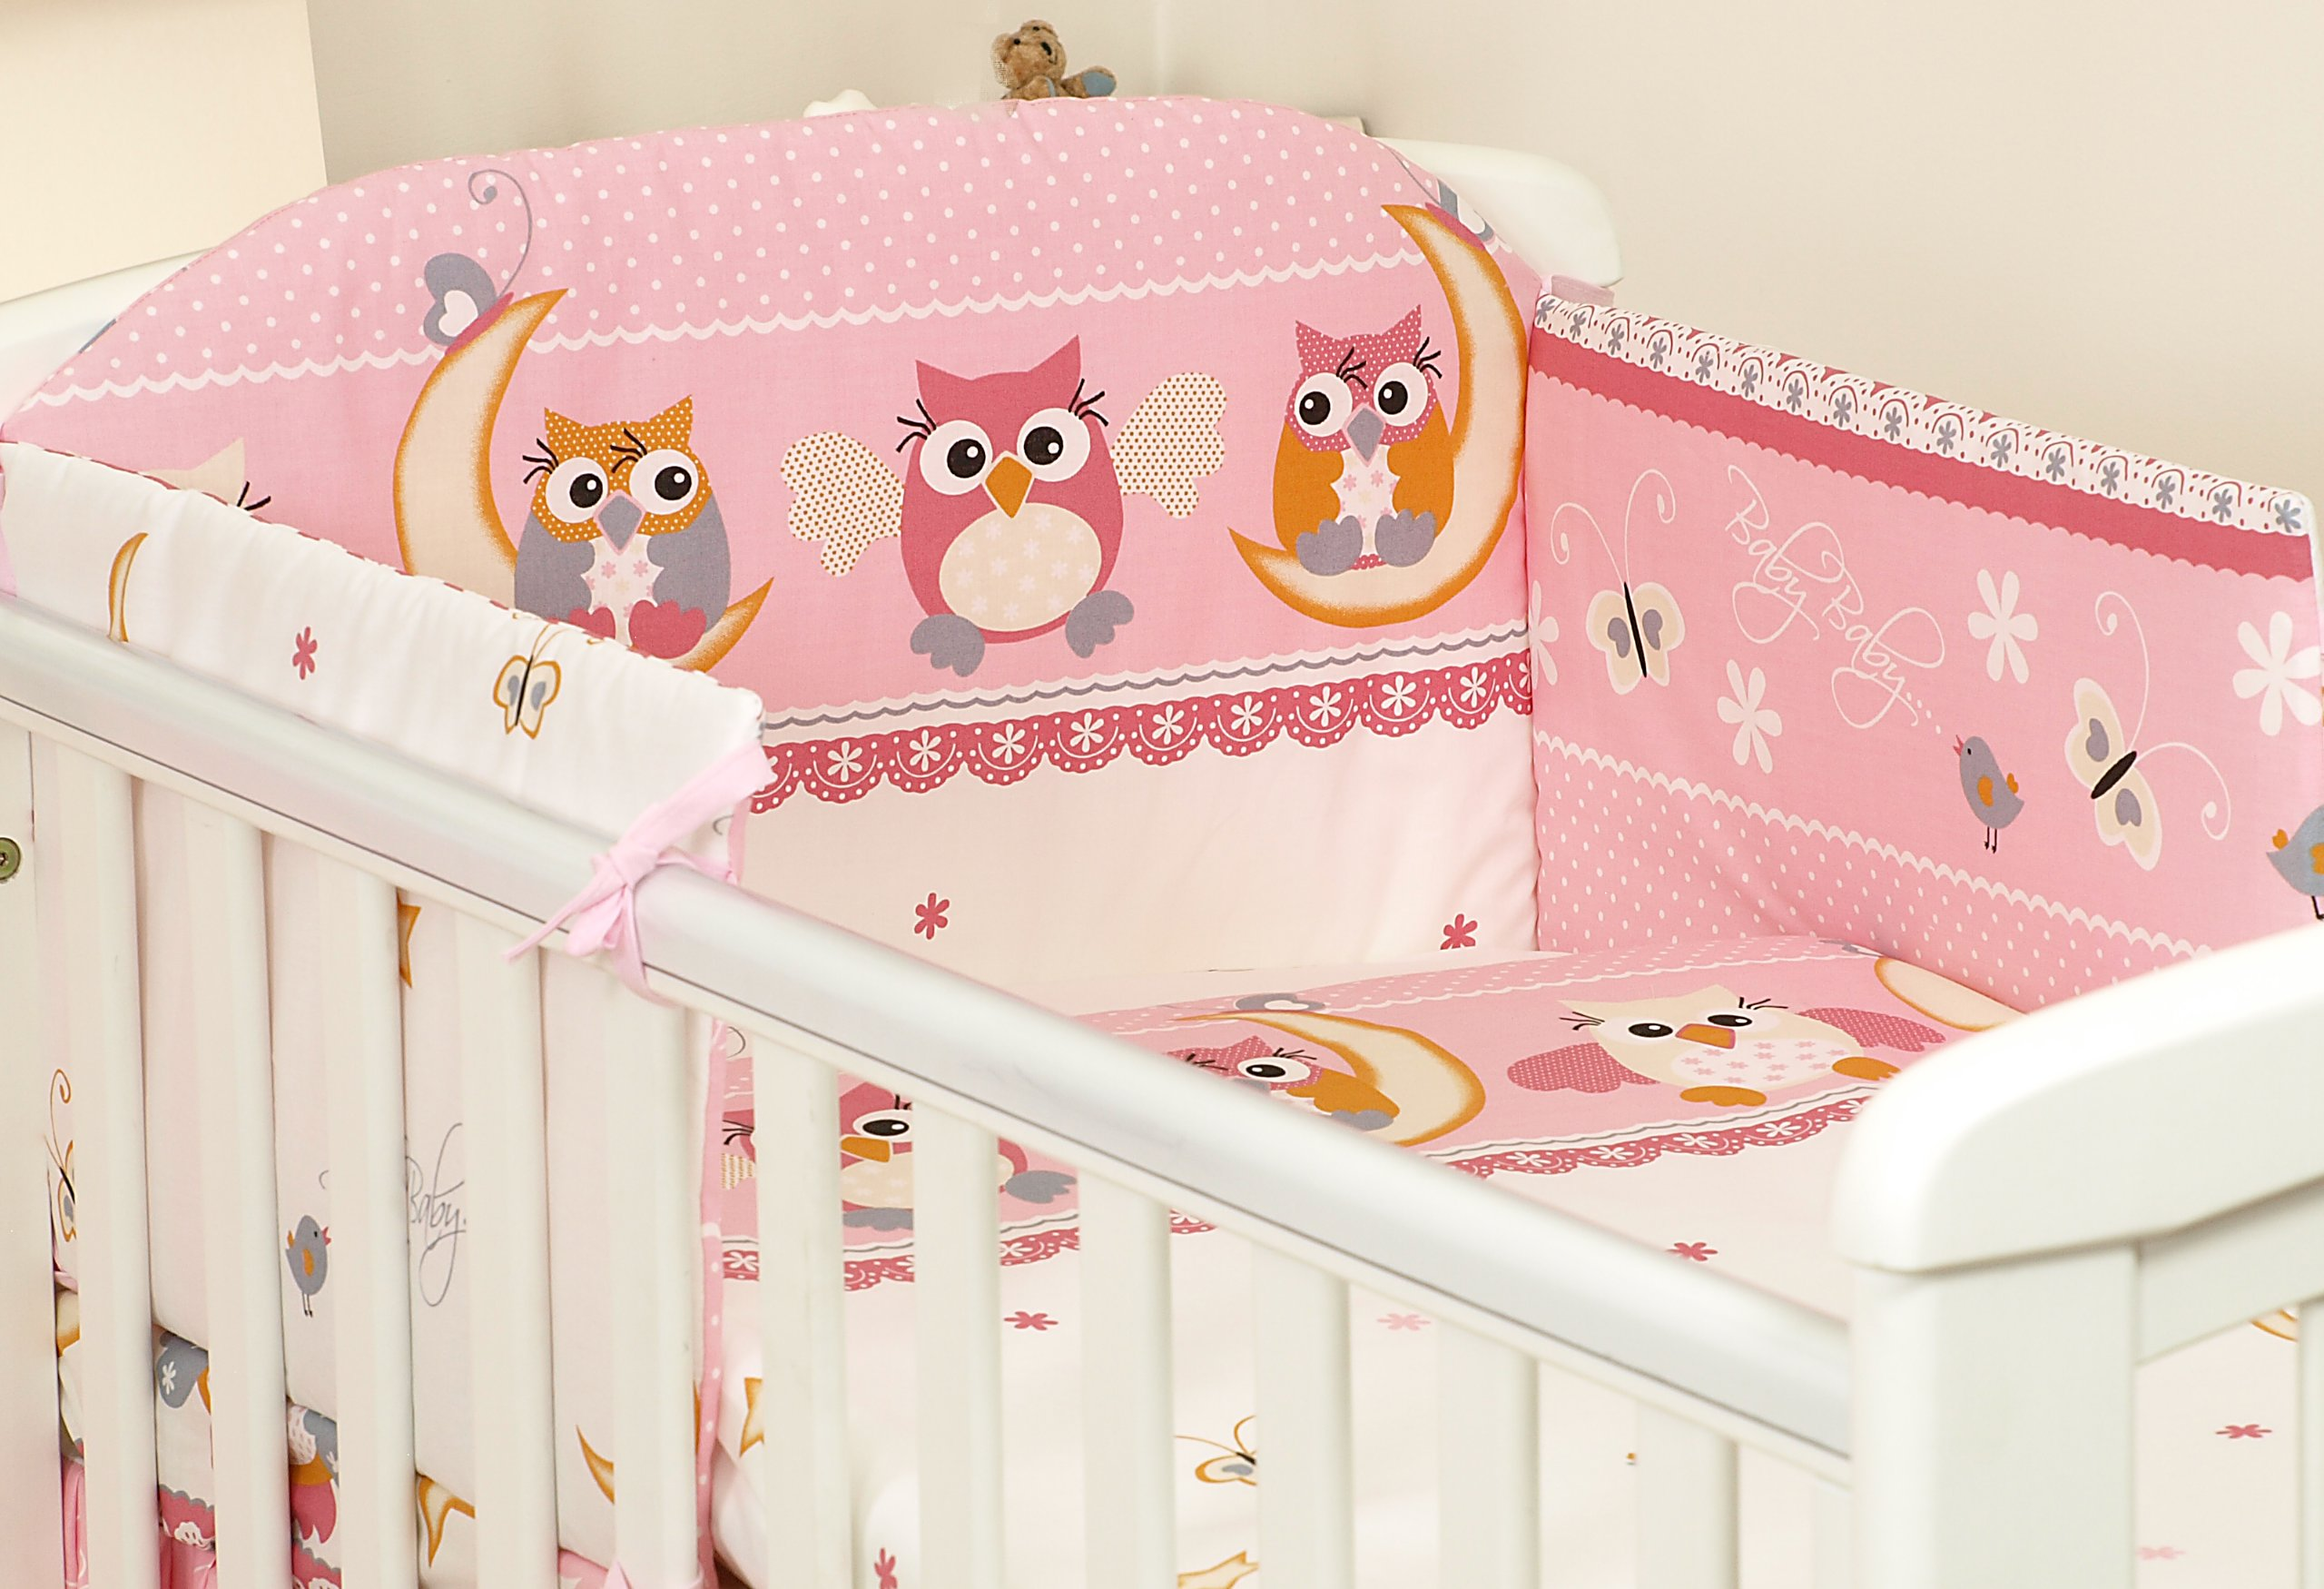 Owls Turquoise BABY BEDDING SET CRIB CRADLE 10 Pieces PILLOW DUVET COVER BUMPER CANOPY to fit Crib 90x40cm 100/% COTTON